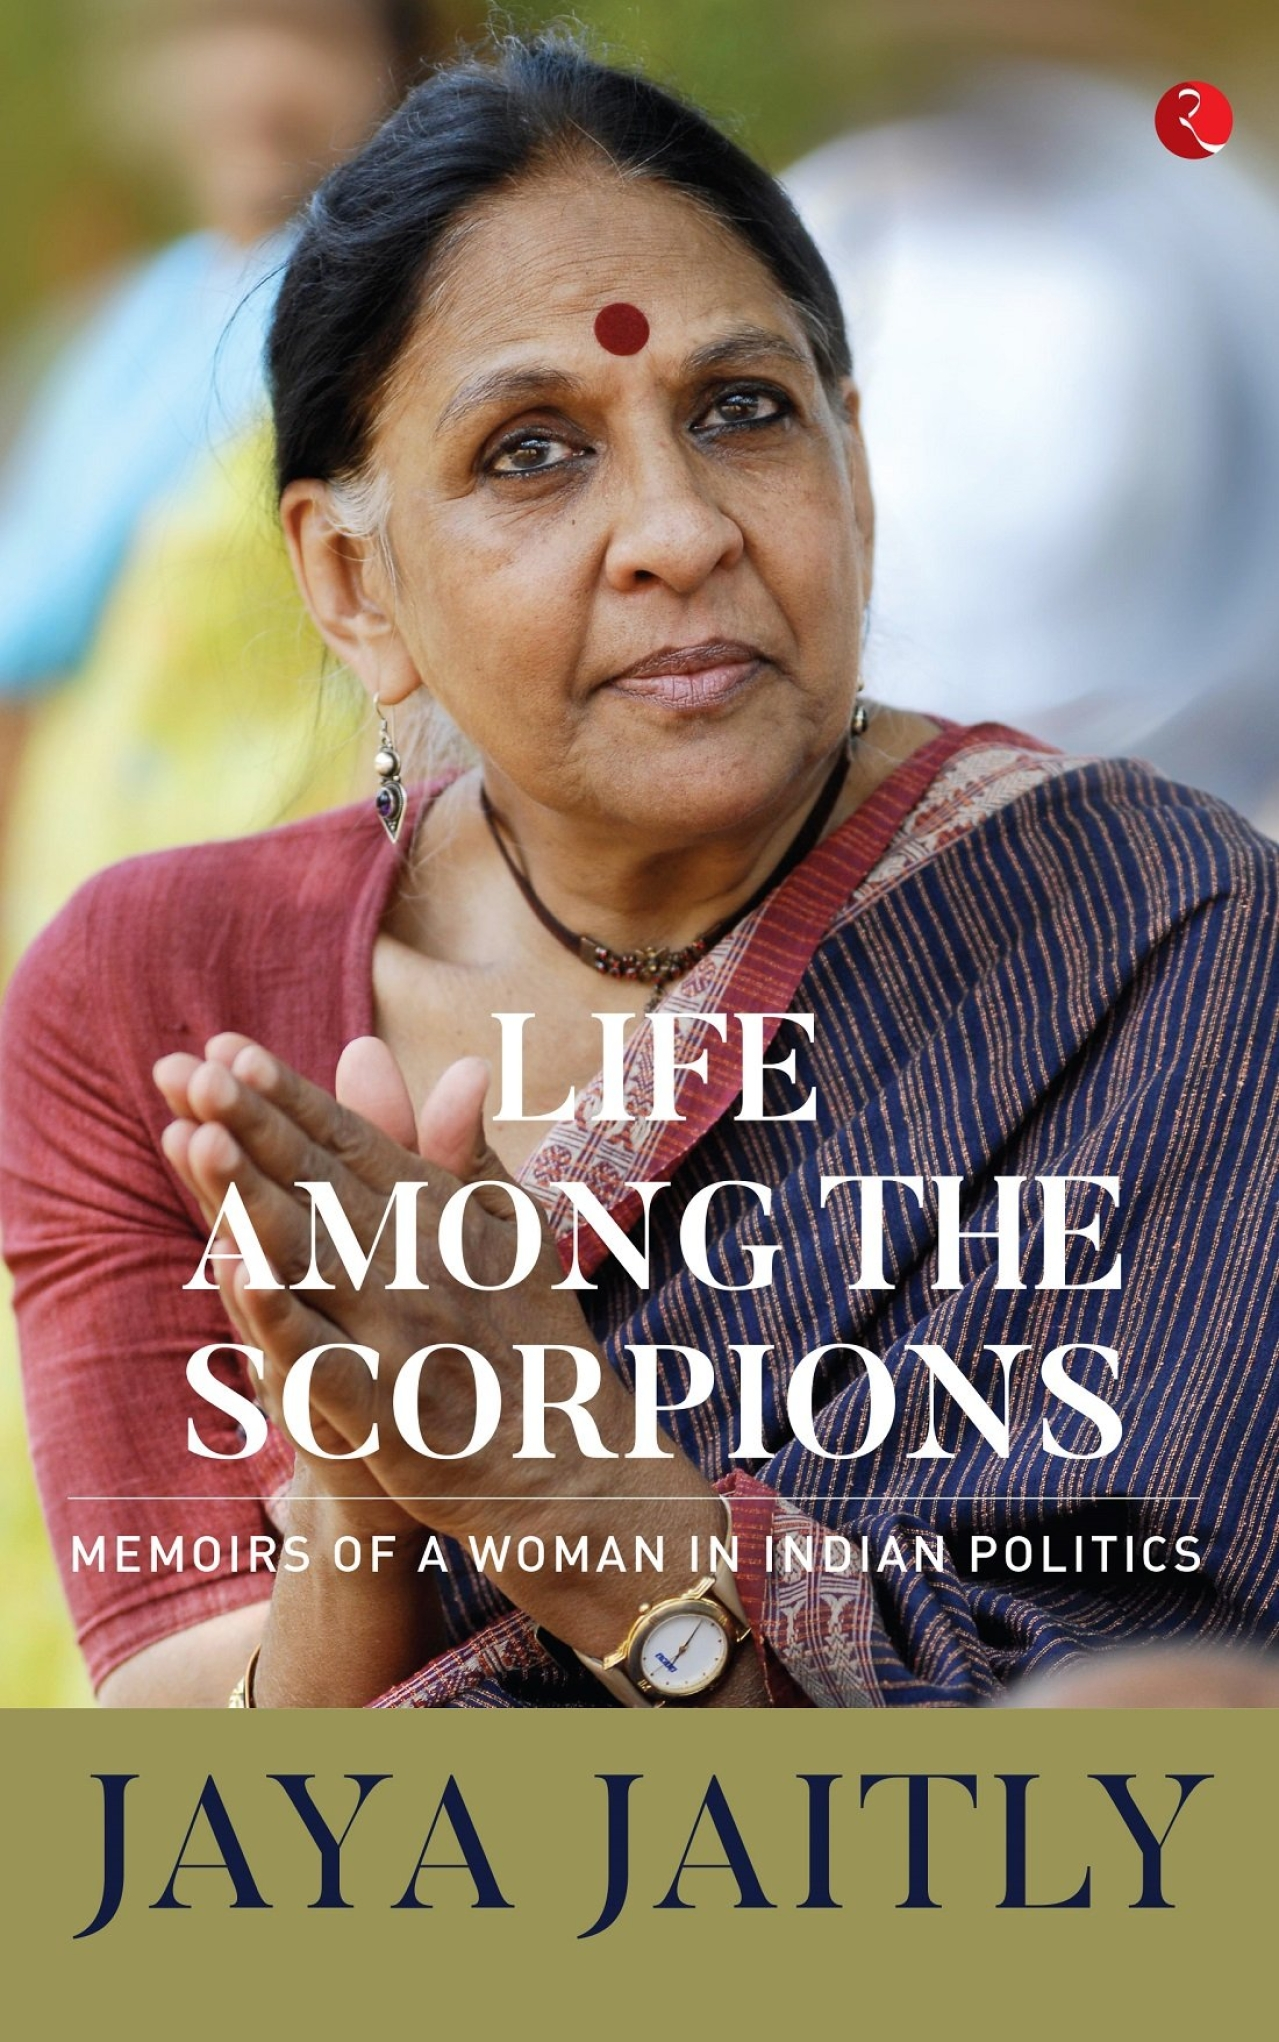 Life Among the Scorpions: Memoirs of a Woman in Indian Politics by Jaya Jaitly, Rupa Publications